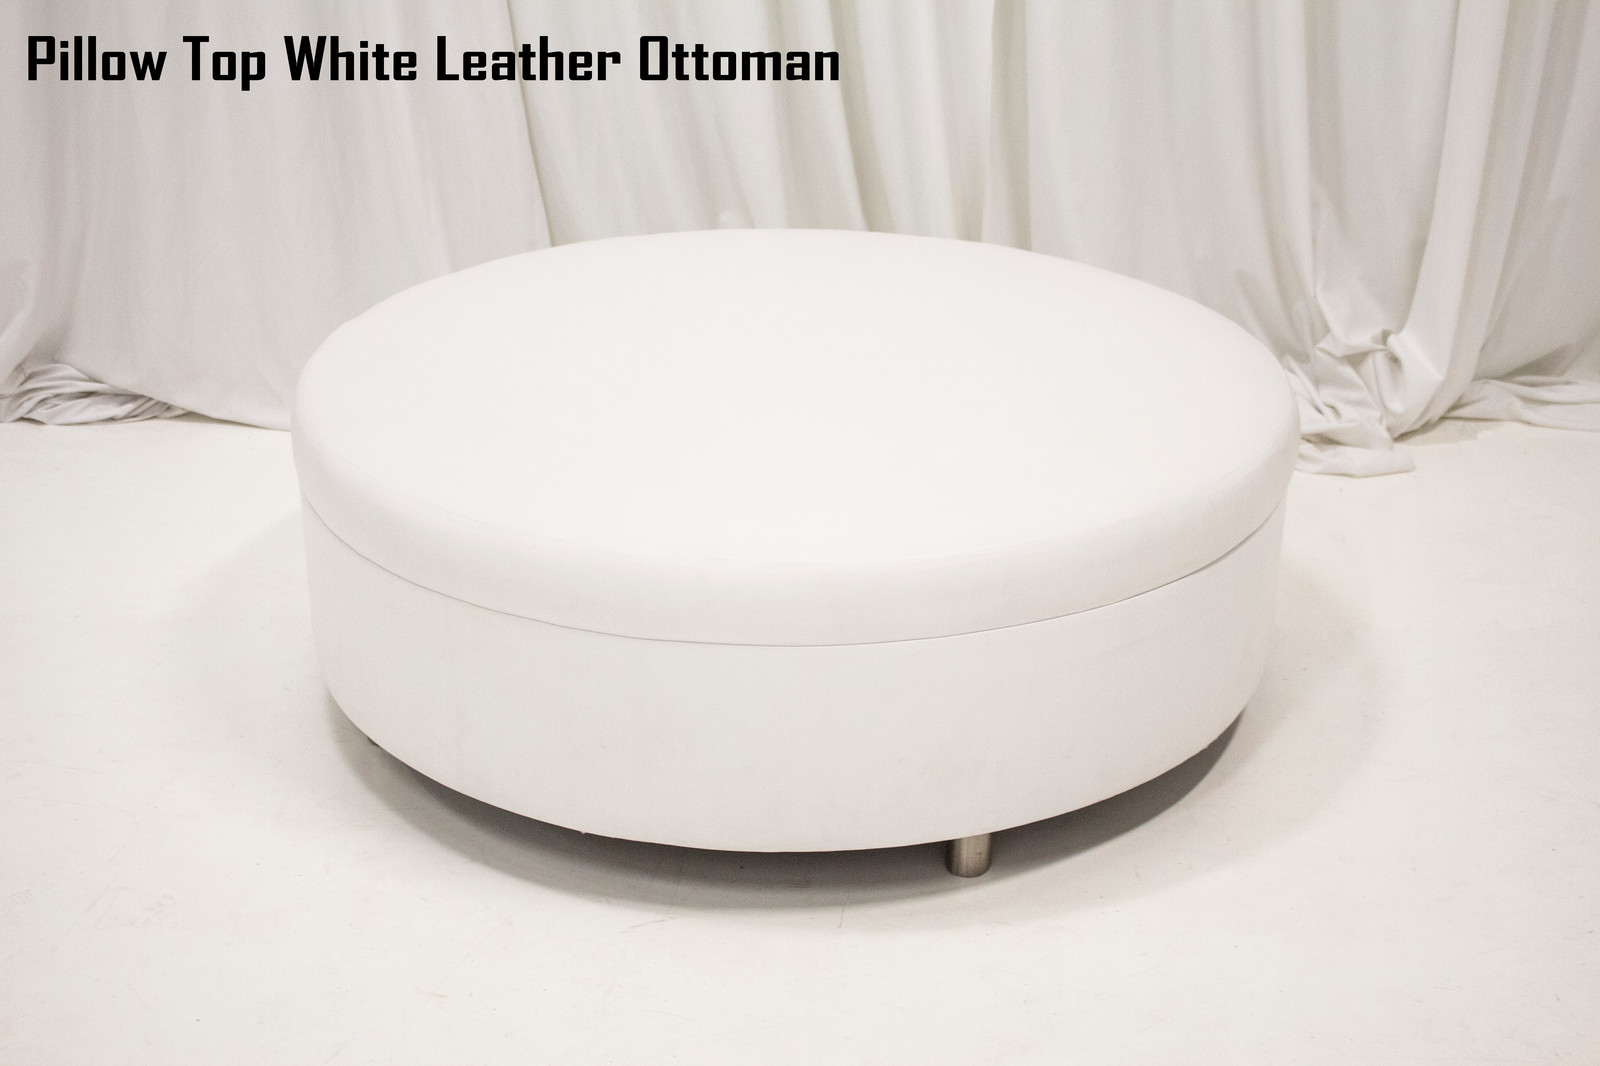 Brilliant Pillow Top White Leather Ottoman Gmtry Best Dining Table And Chair Ideas Images Gmtryco